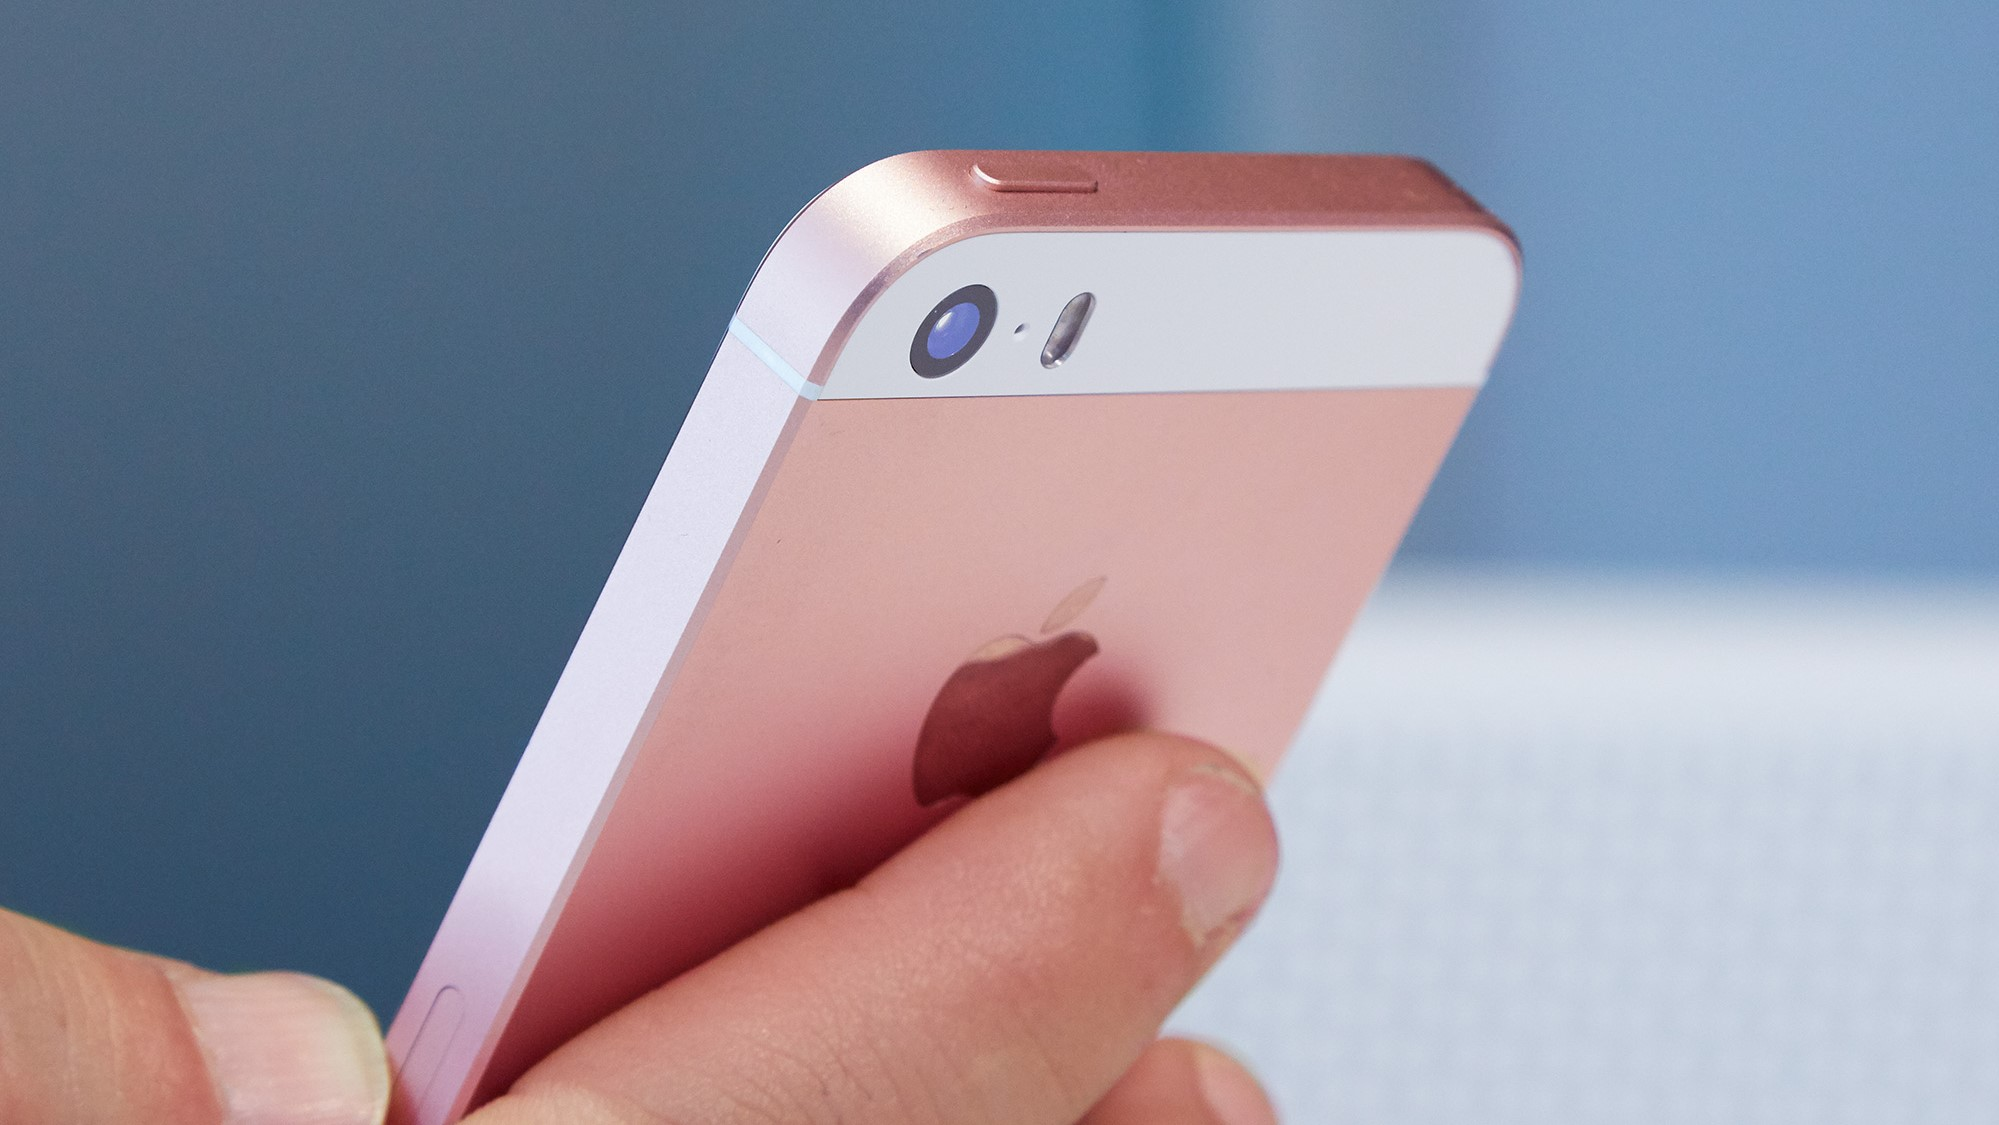 Apple iPhone SE 2 Release Date Confirmed Budget Variant will Launch in 1st Quarter of 2020